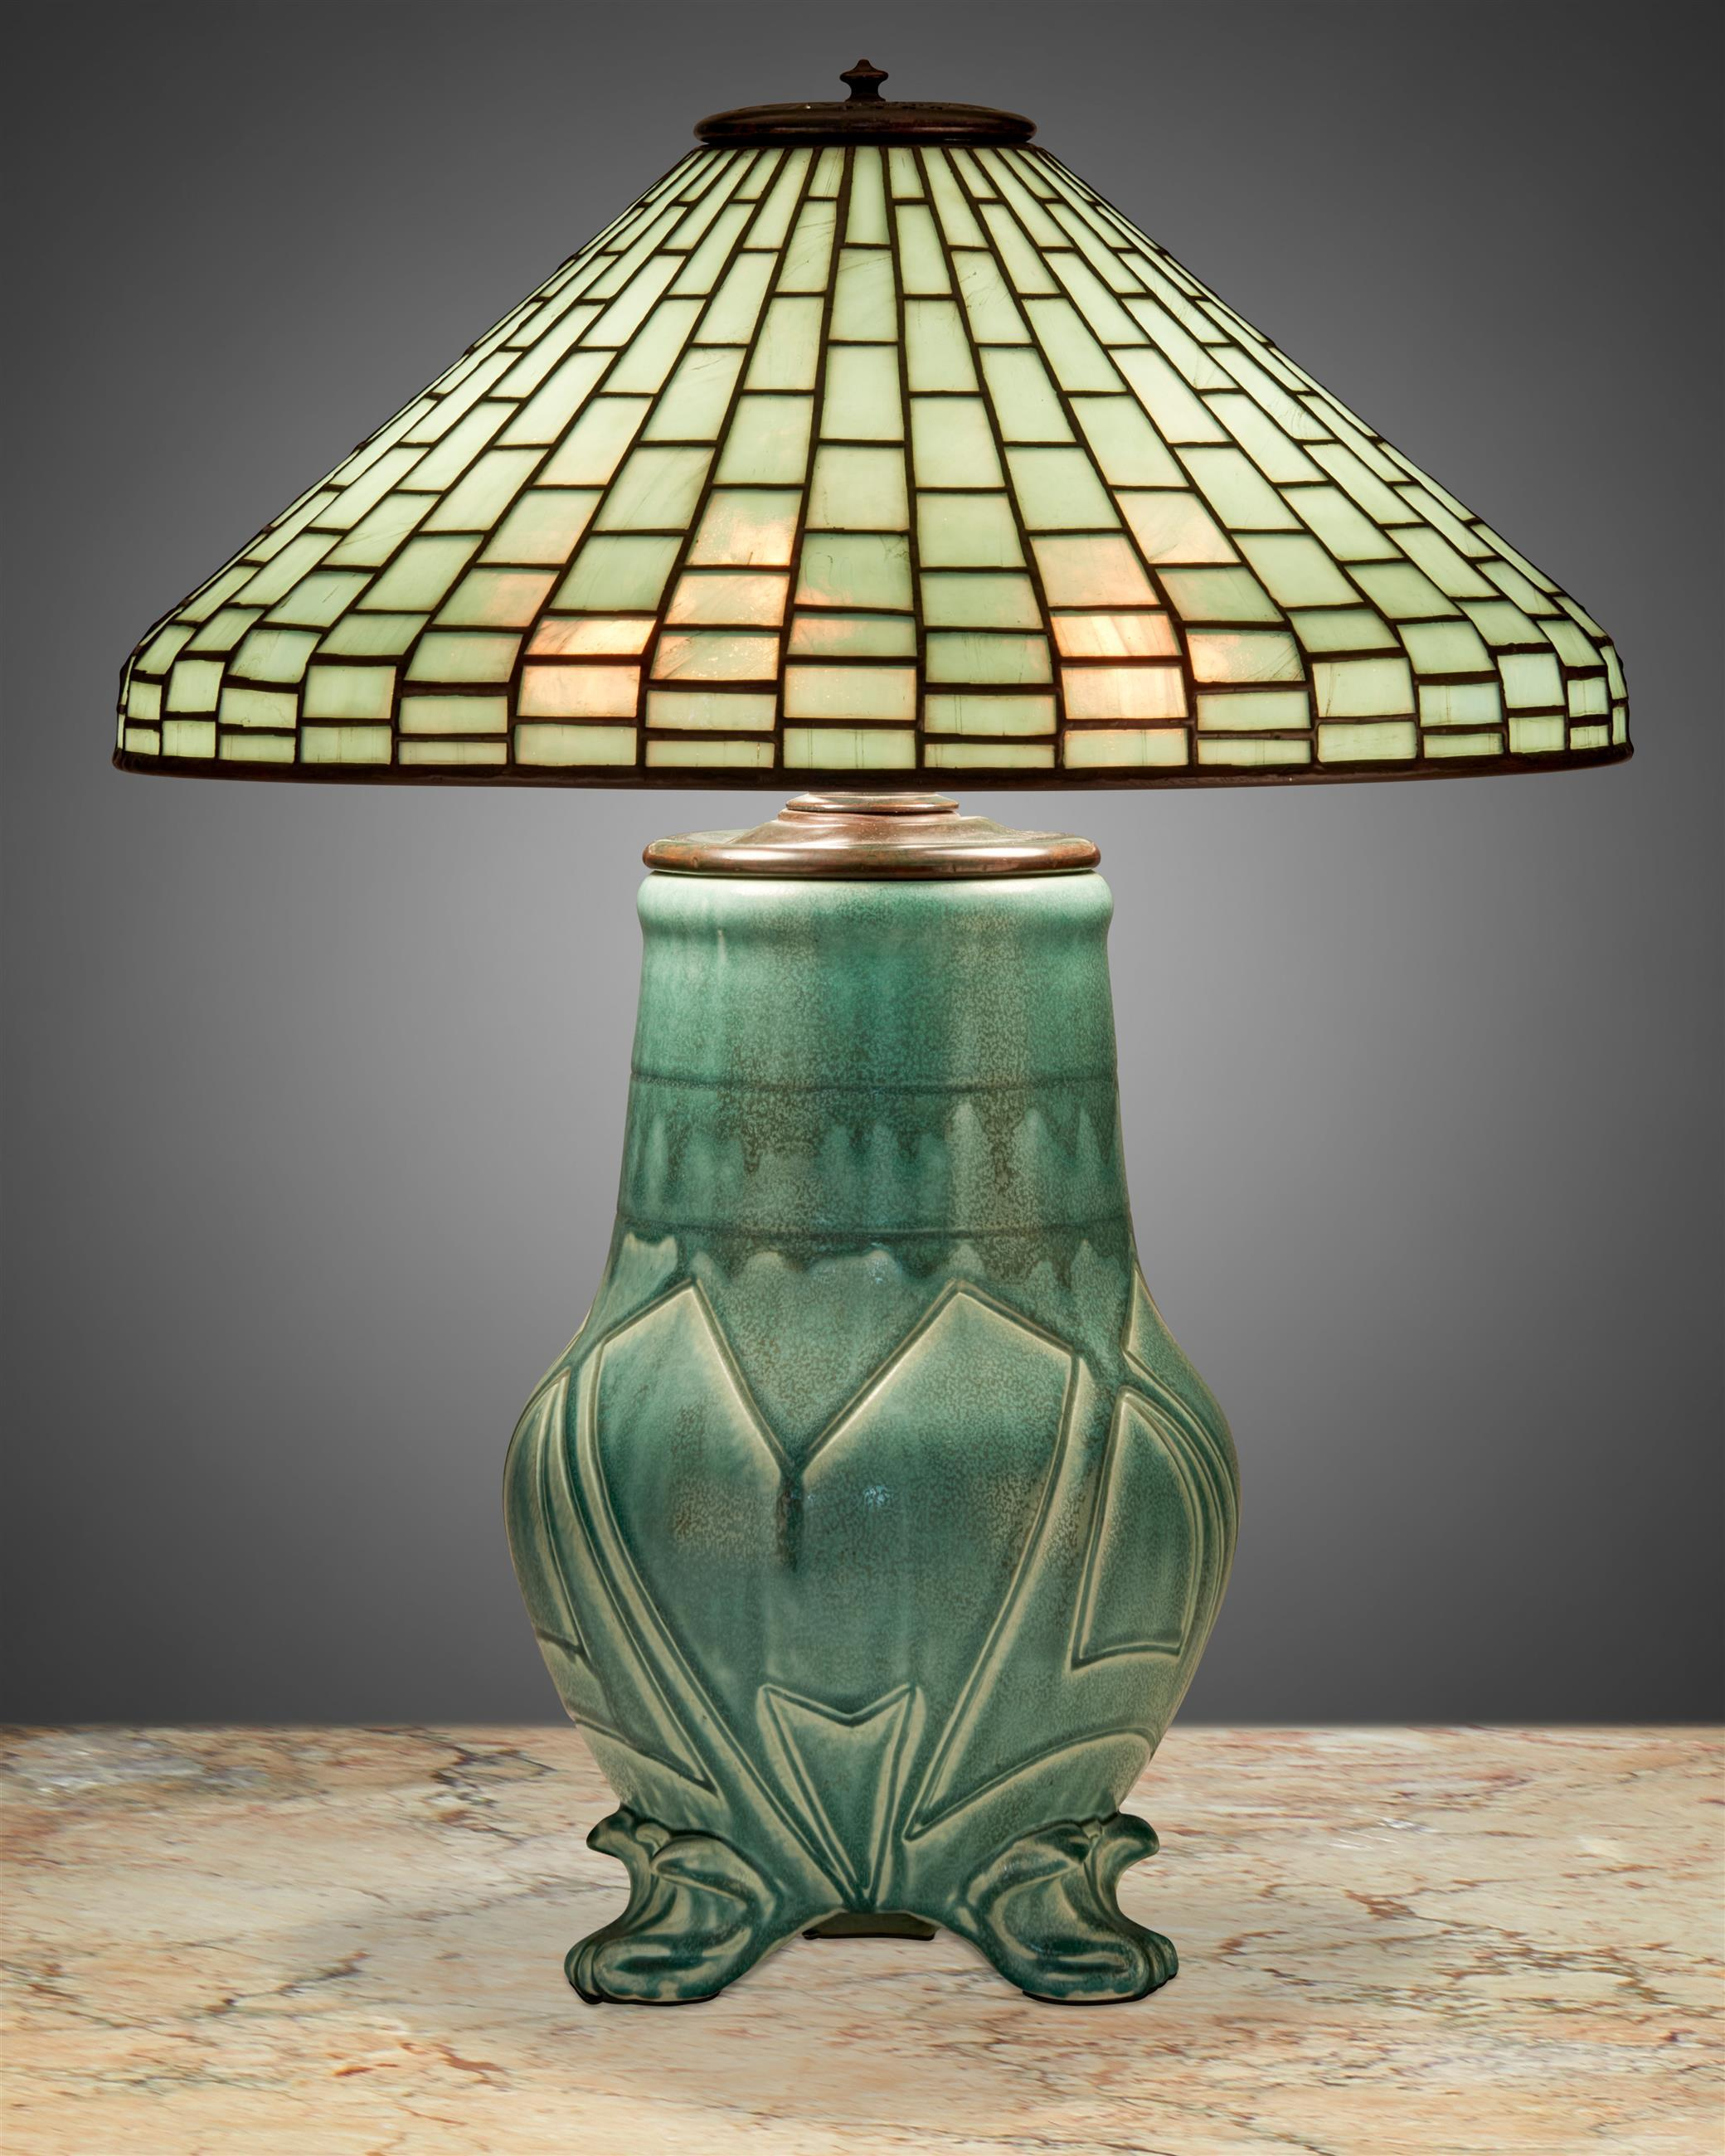 A Tiffany Studios leaded glass and Rookwood pottery table lamp